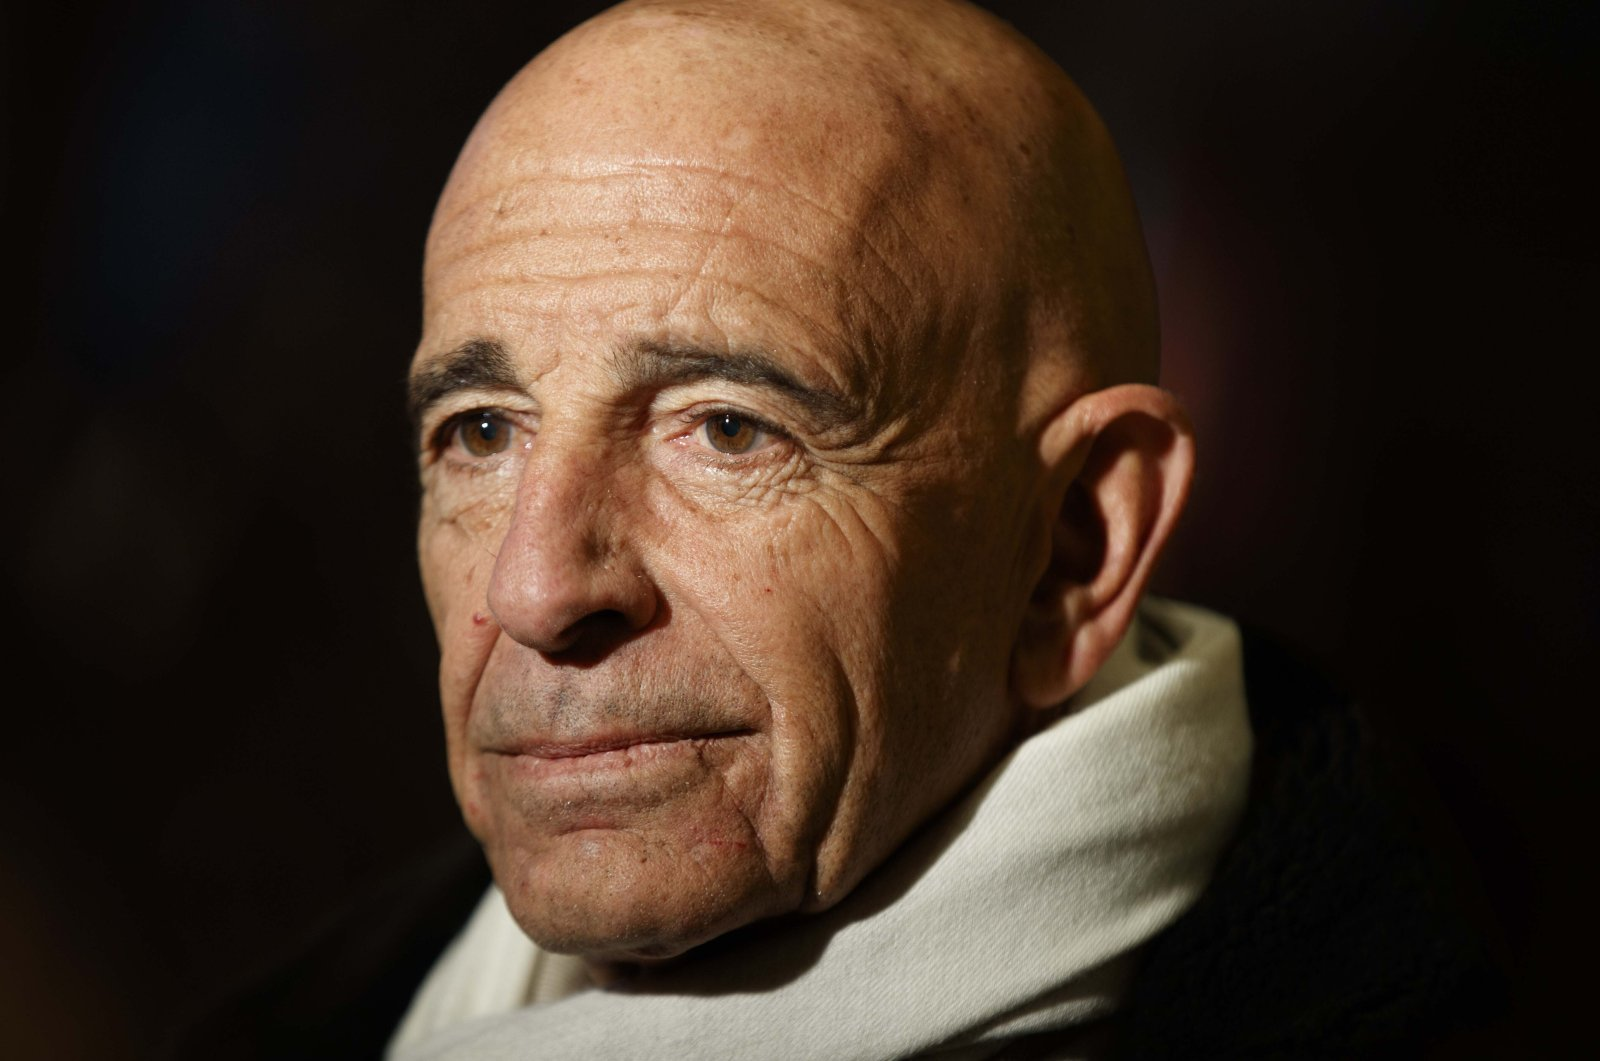 Tom Barrack before a meeting with President-elect Donald Trump speaking in New York, U.S., Jan. 10, 2017. (AP File Photo)